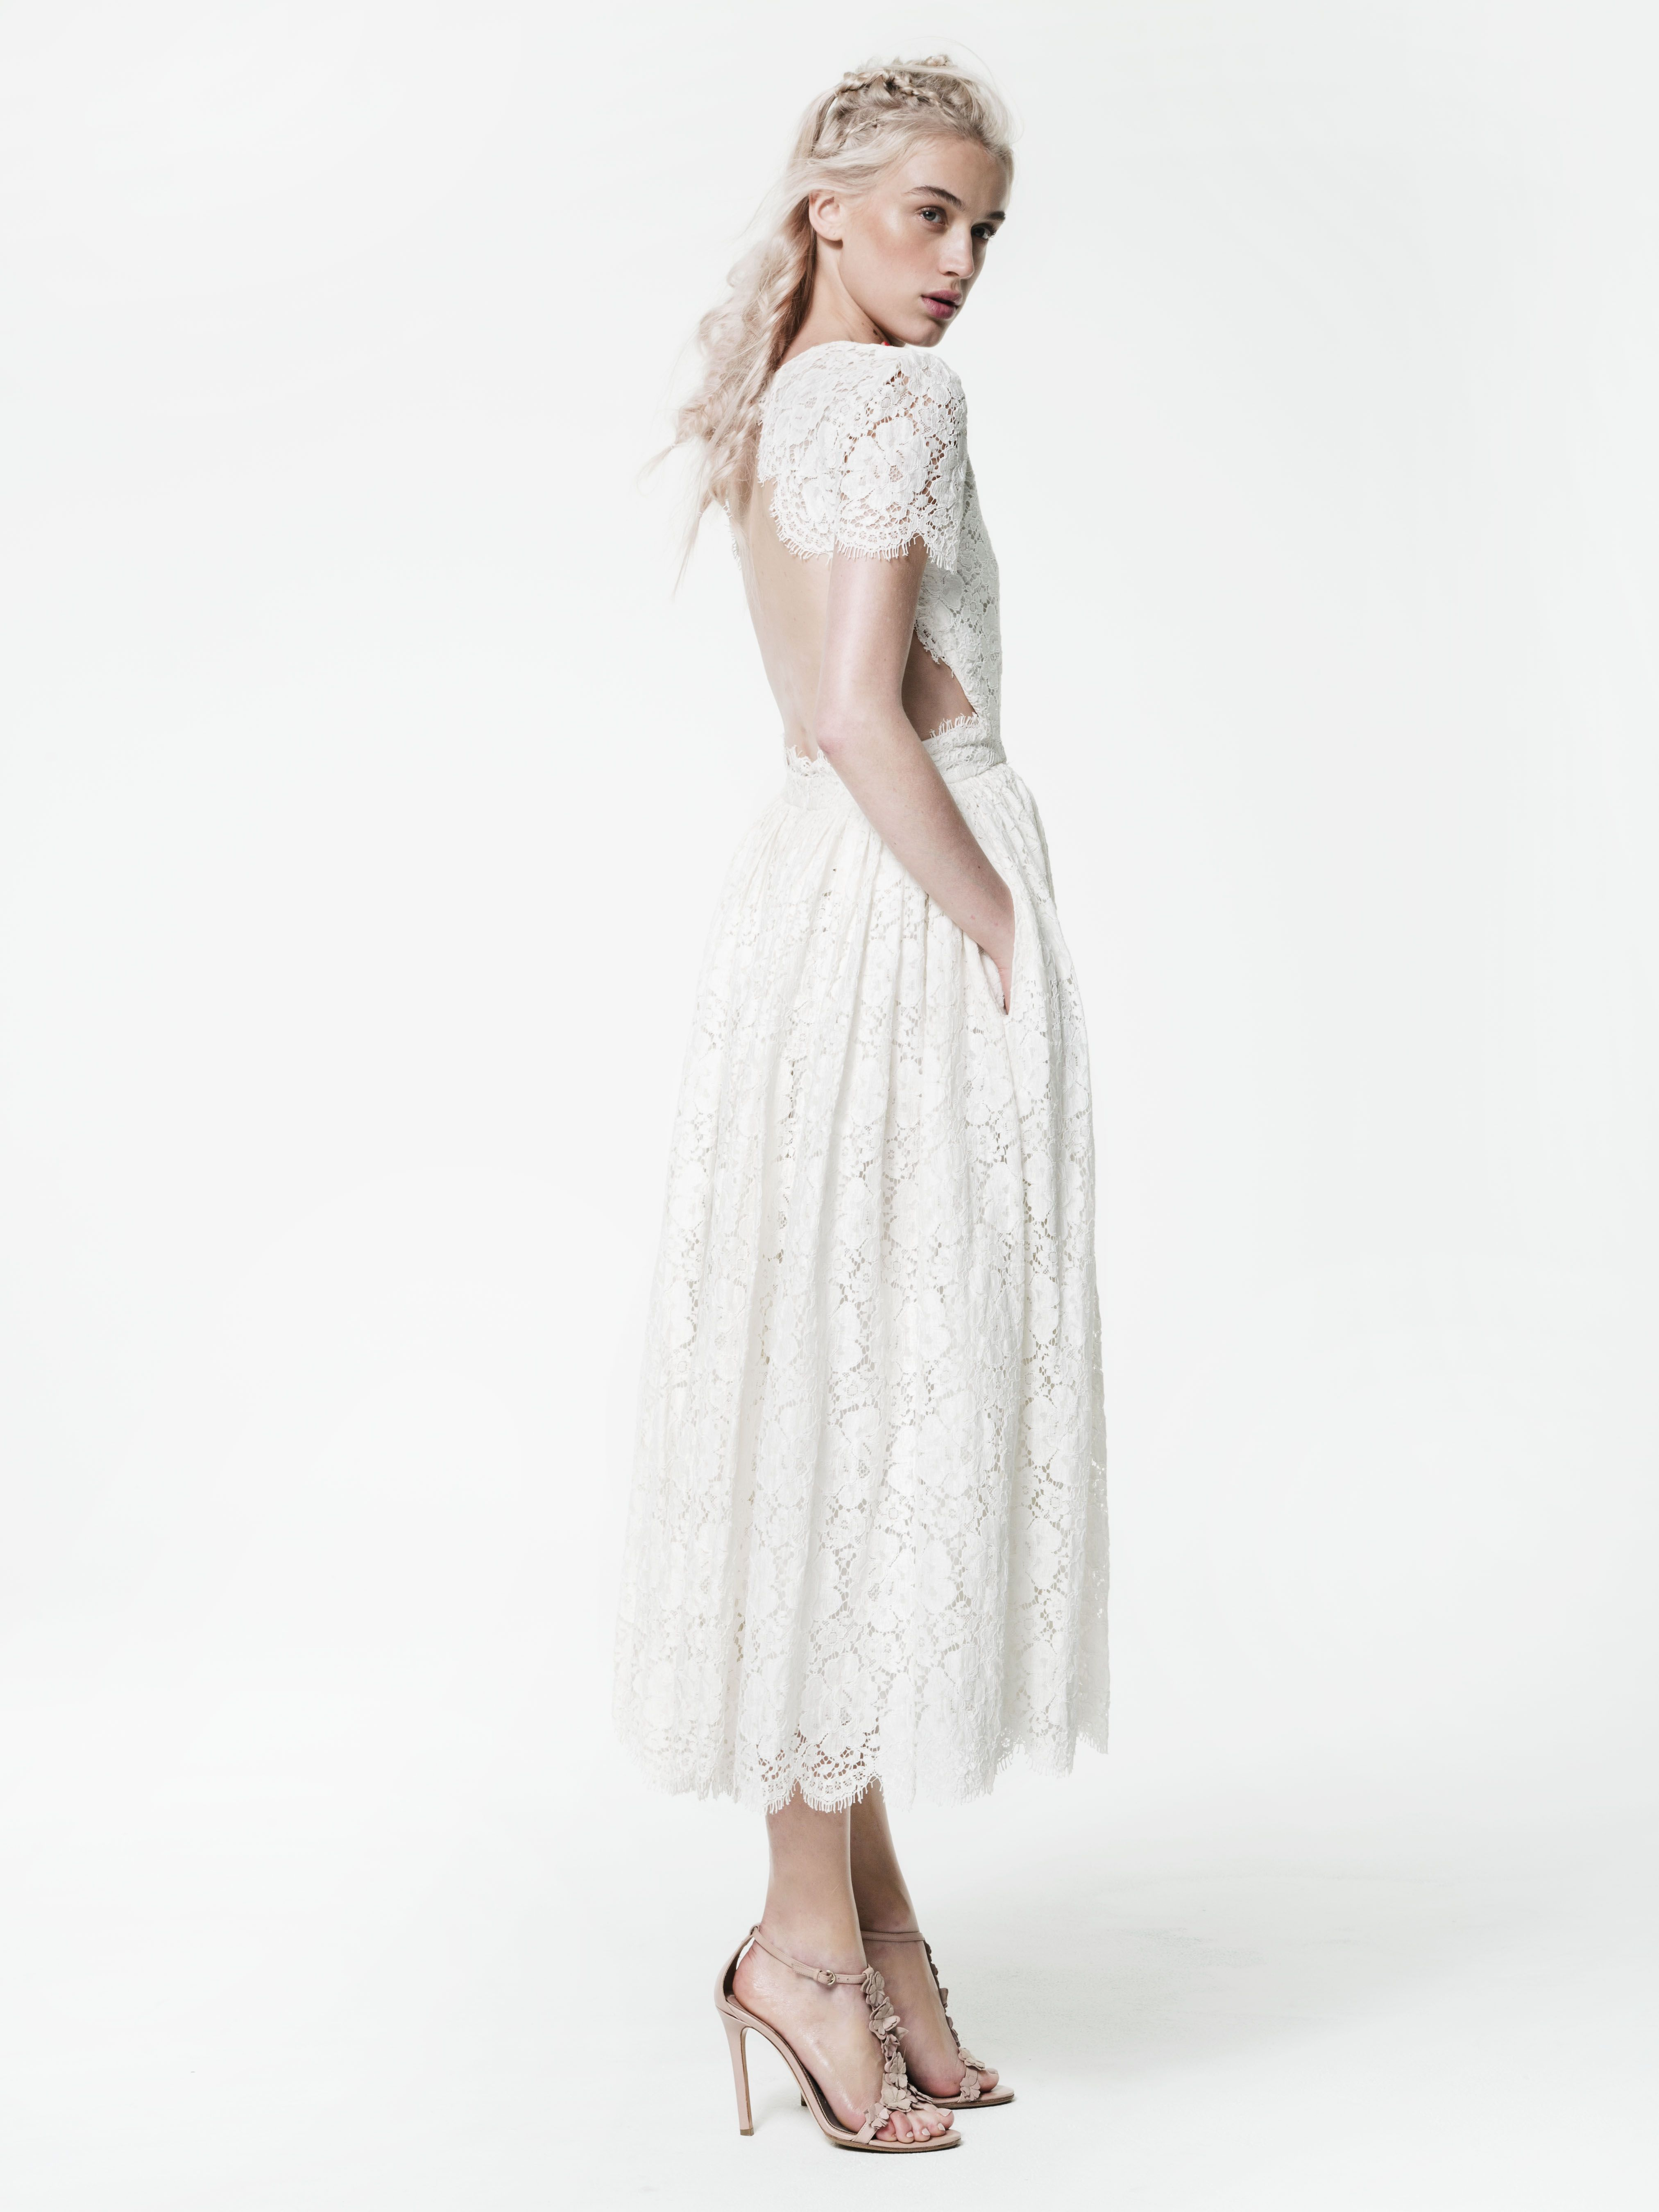 Houghton Prince Dress in French Guipure cotton lace with